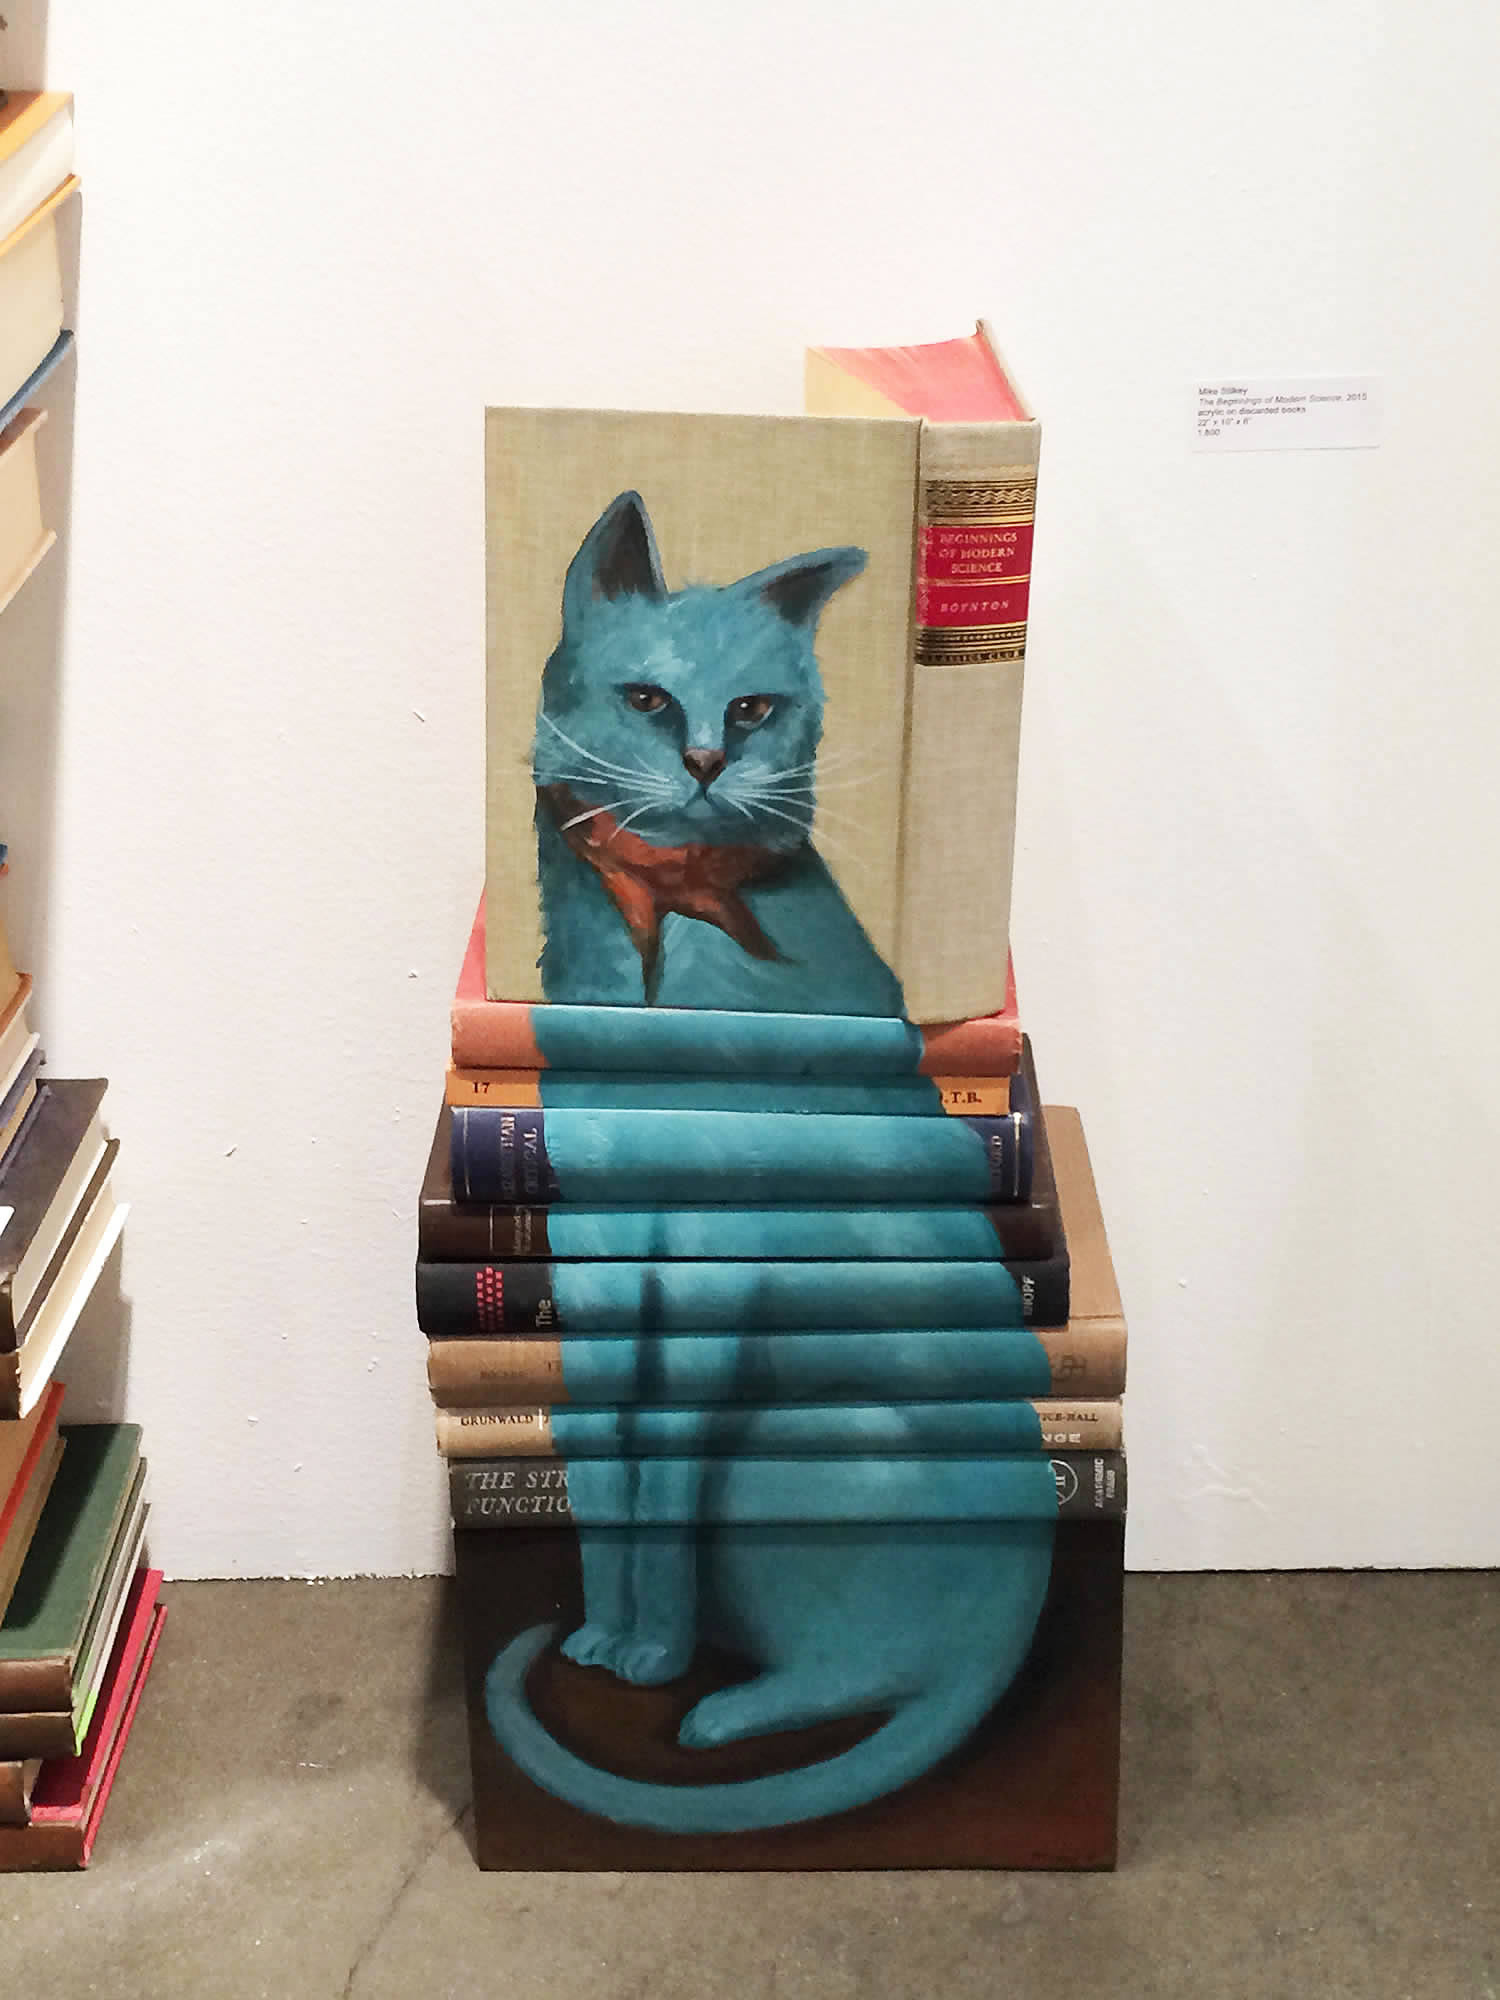 blue cat painted on book covers by mike stilkey